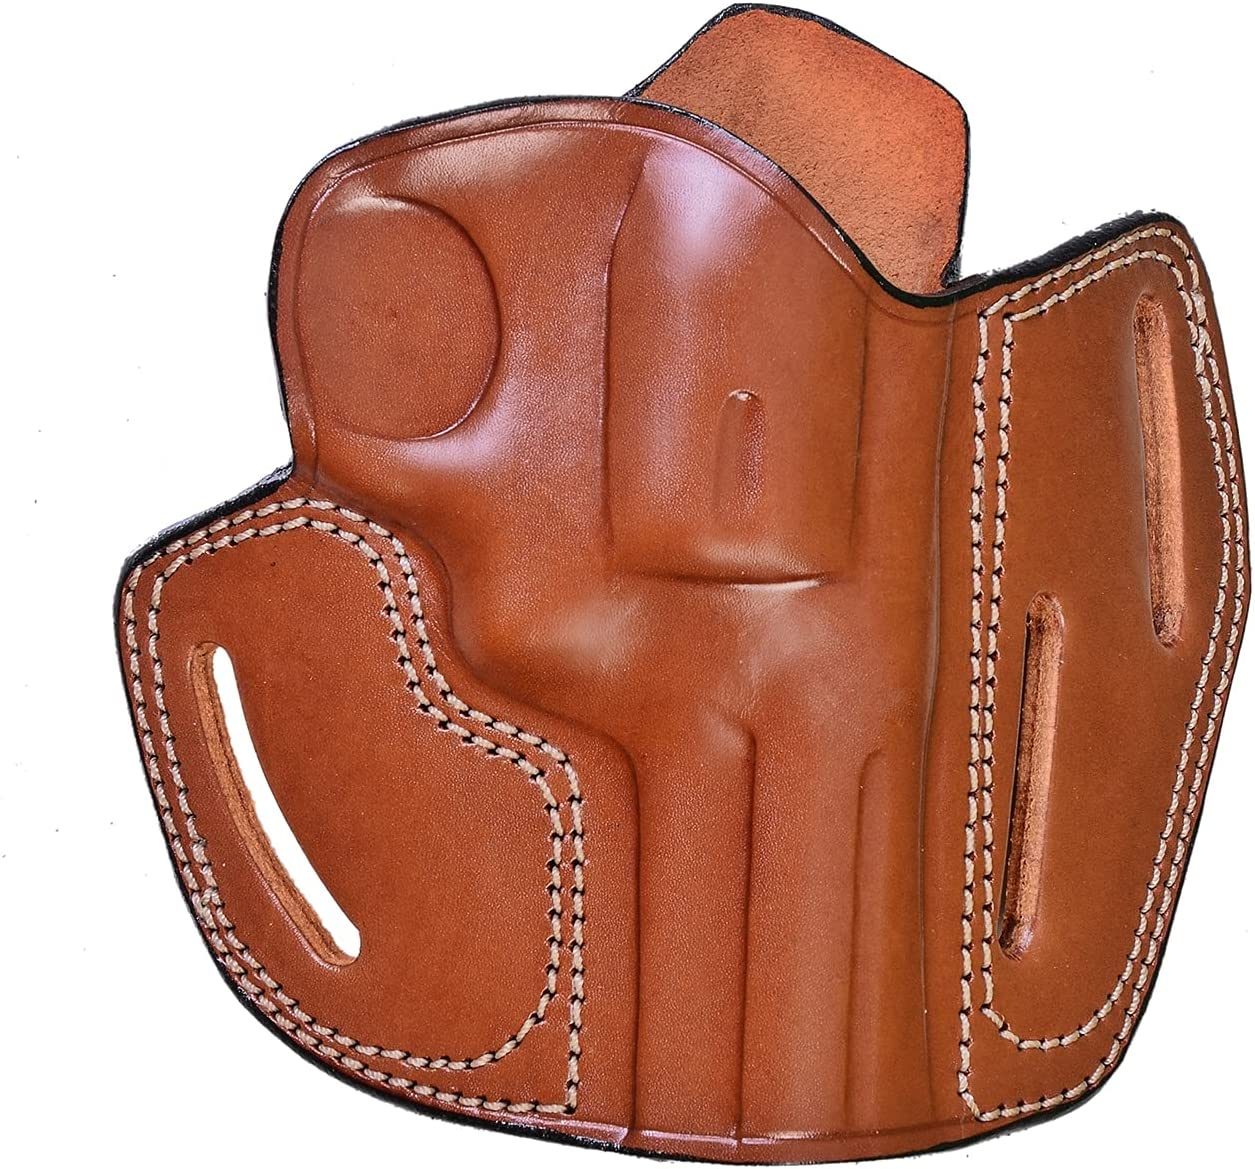 Leather Holster for Max 53% OFF Taurus 605 Poly Protector 357 - Genui Magnum 5 ☆ very popular